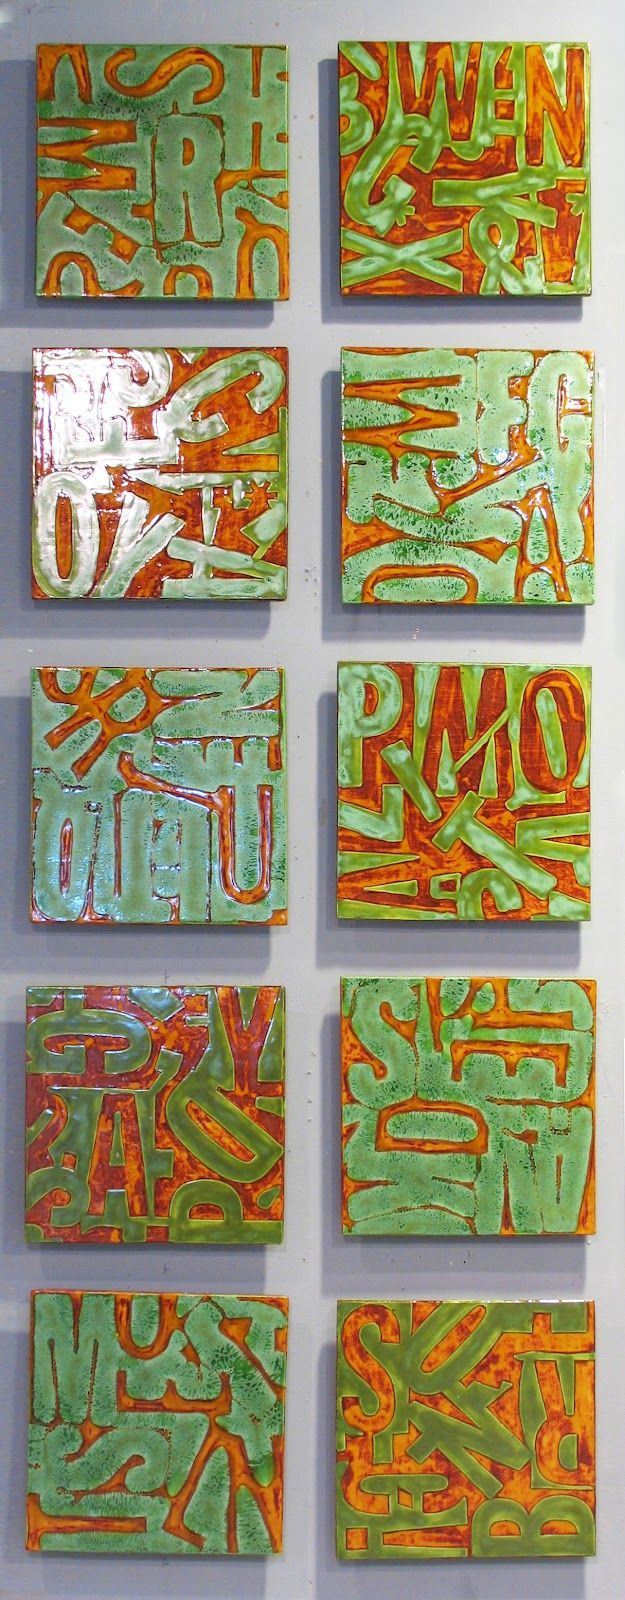 1030 best Art Project Ideas - Clay images on Pinterest ...